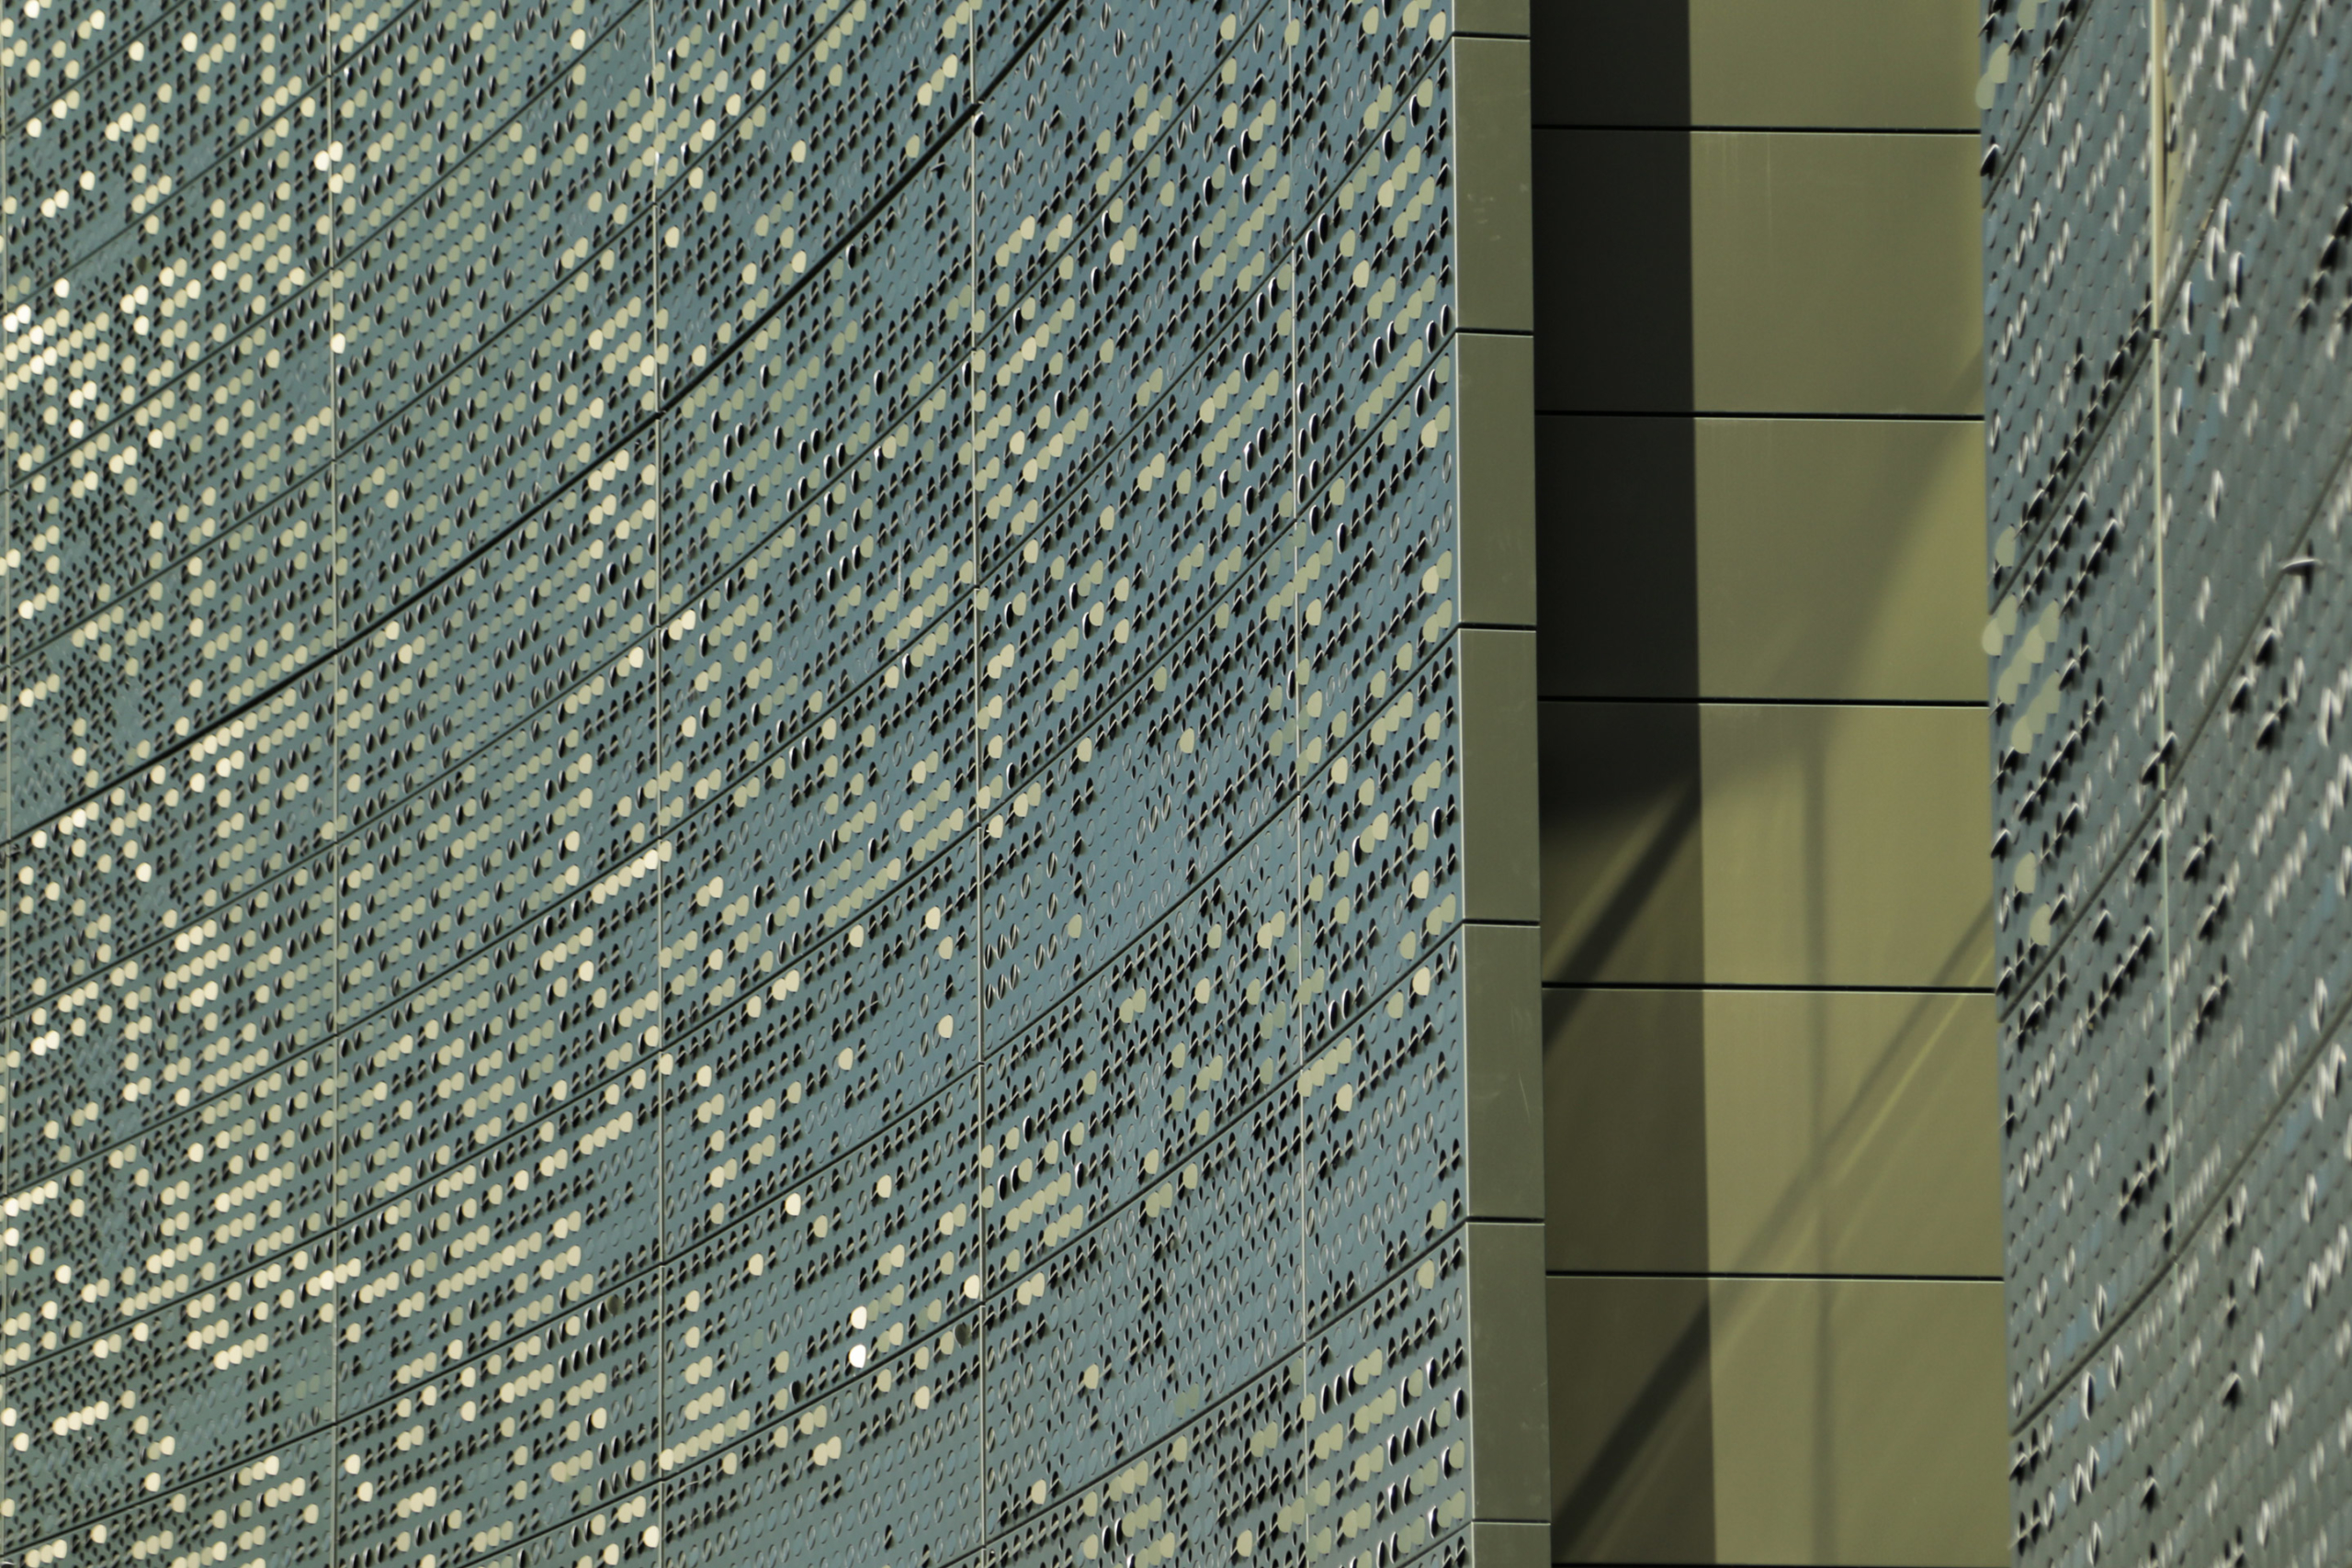 Detail of the louvered perforation patterns on color-shift iridescent painted aluminum panels.